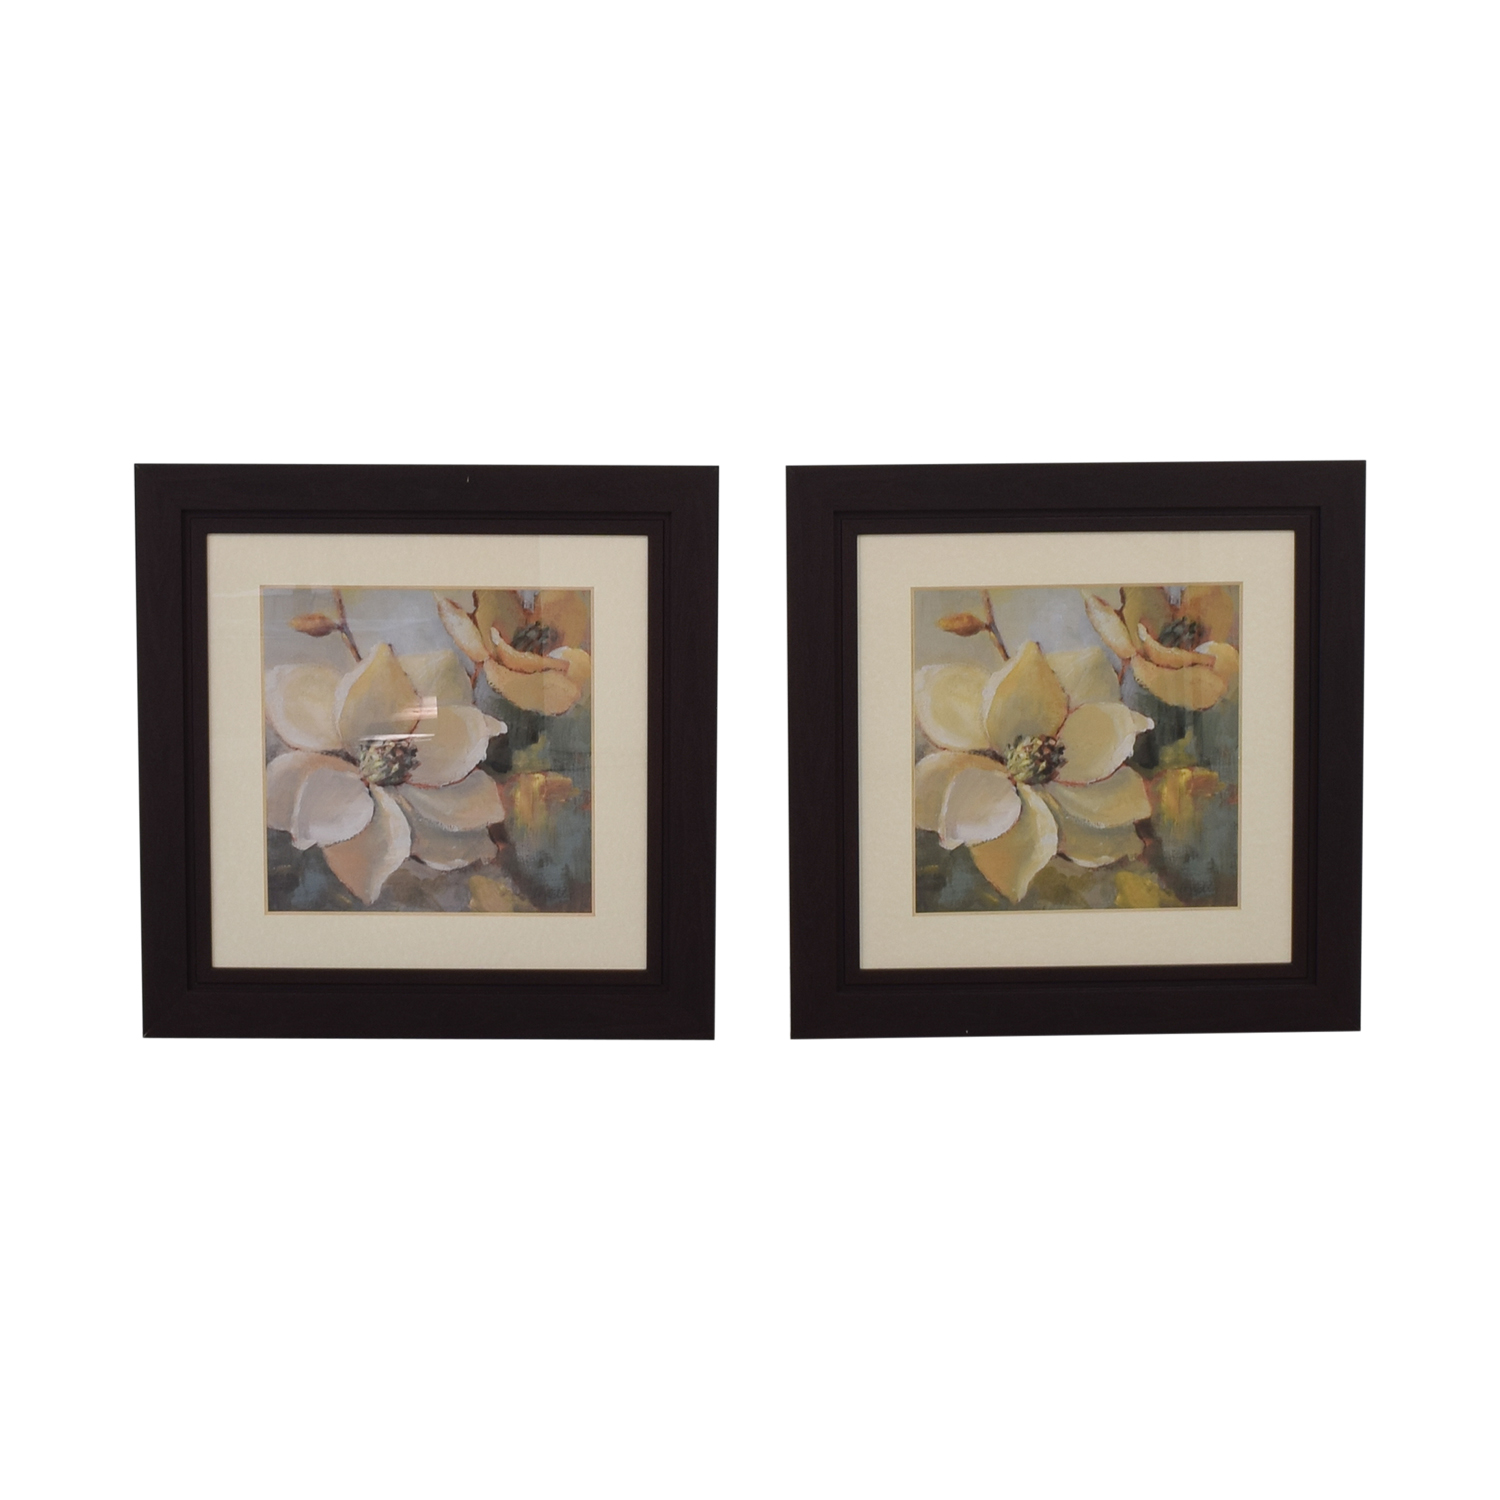 Floral Framed Art Work used